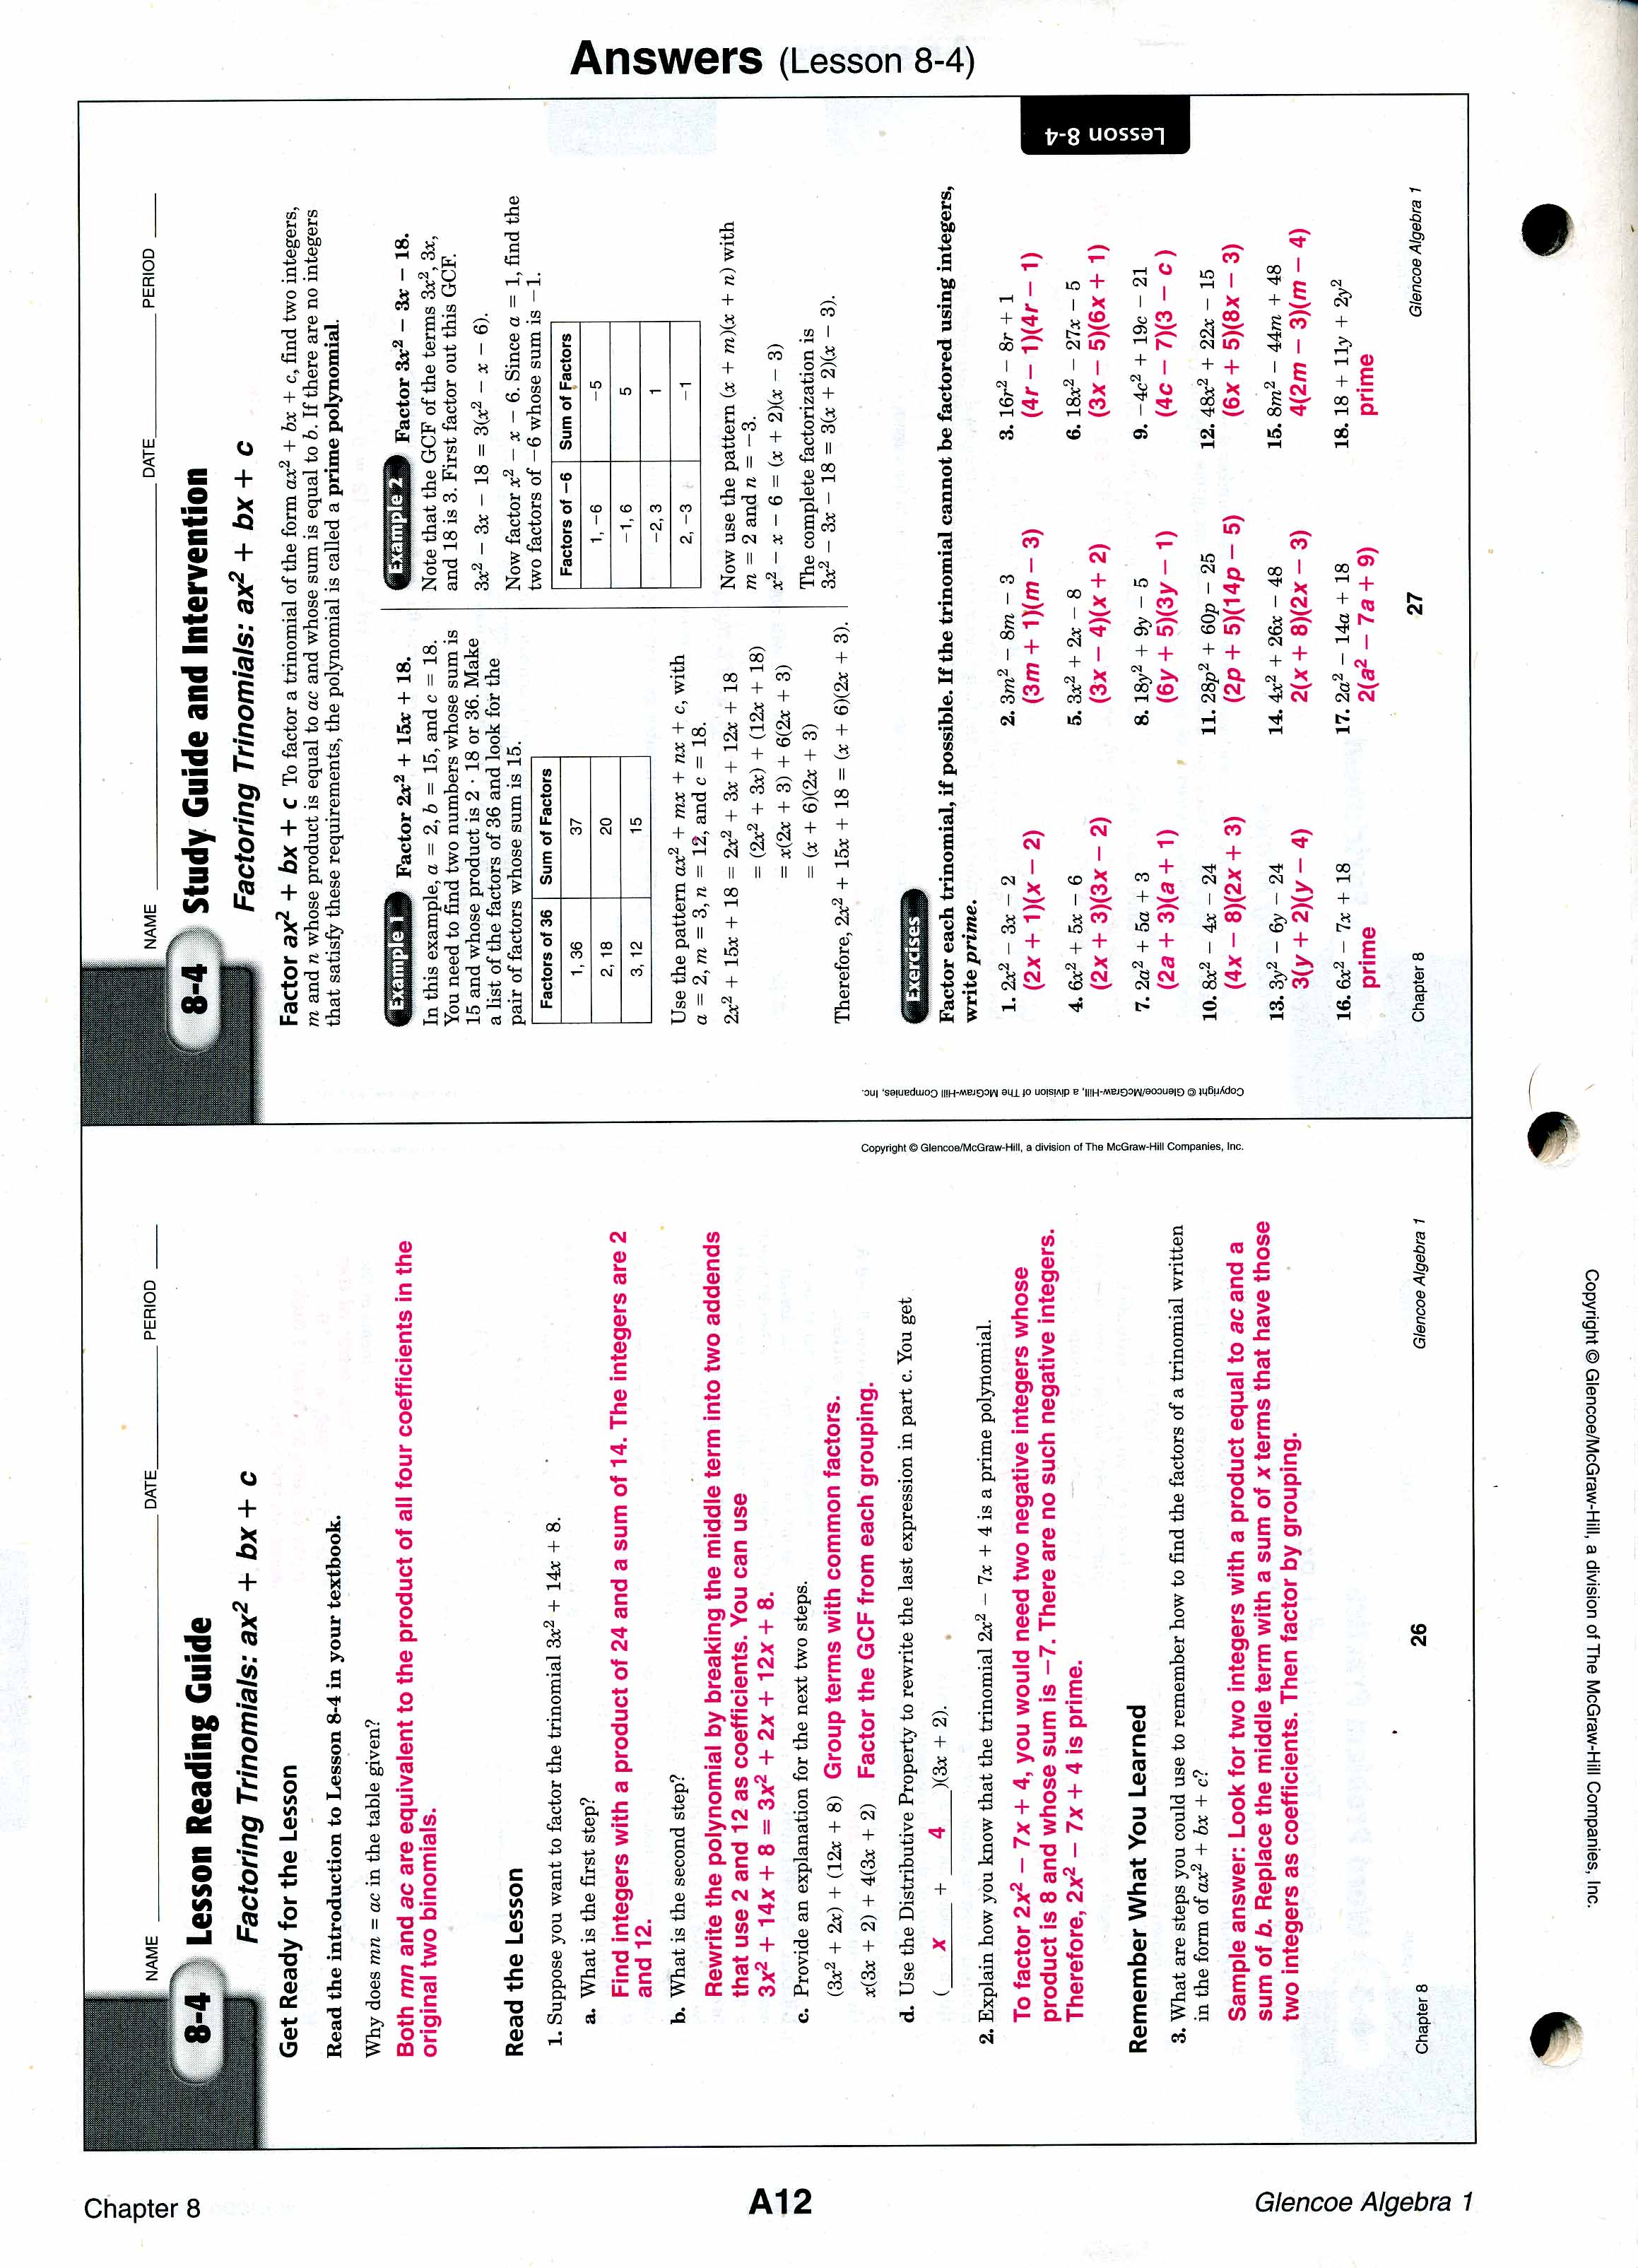 worksheet Algebra 1 Worksheets With Answers mrscabral algebra 1 worksheet answers 8 4 front